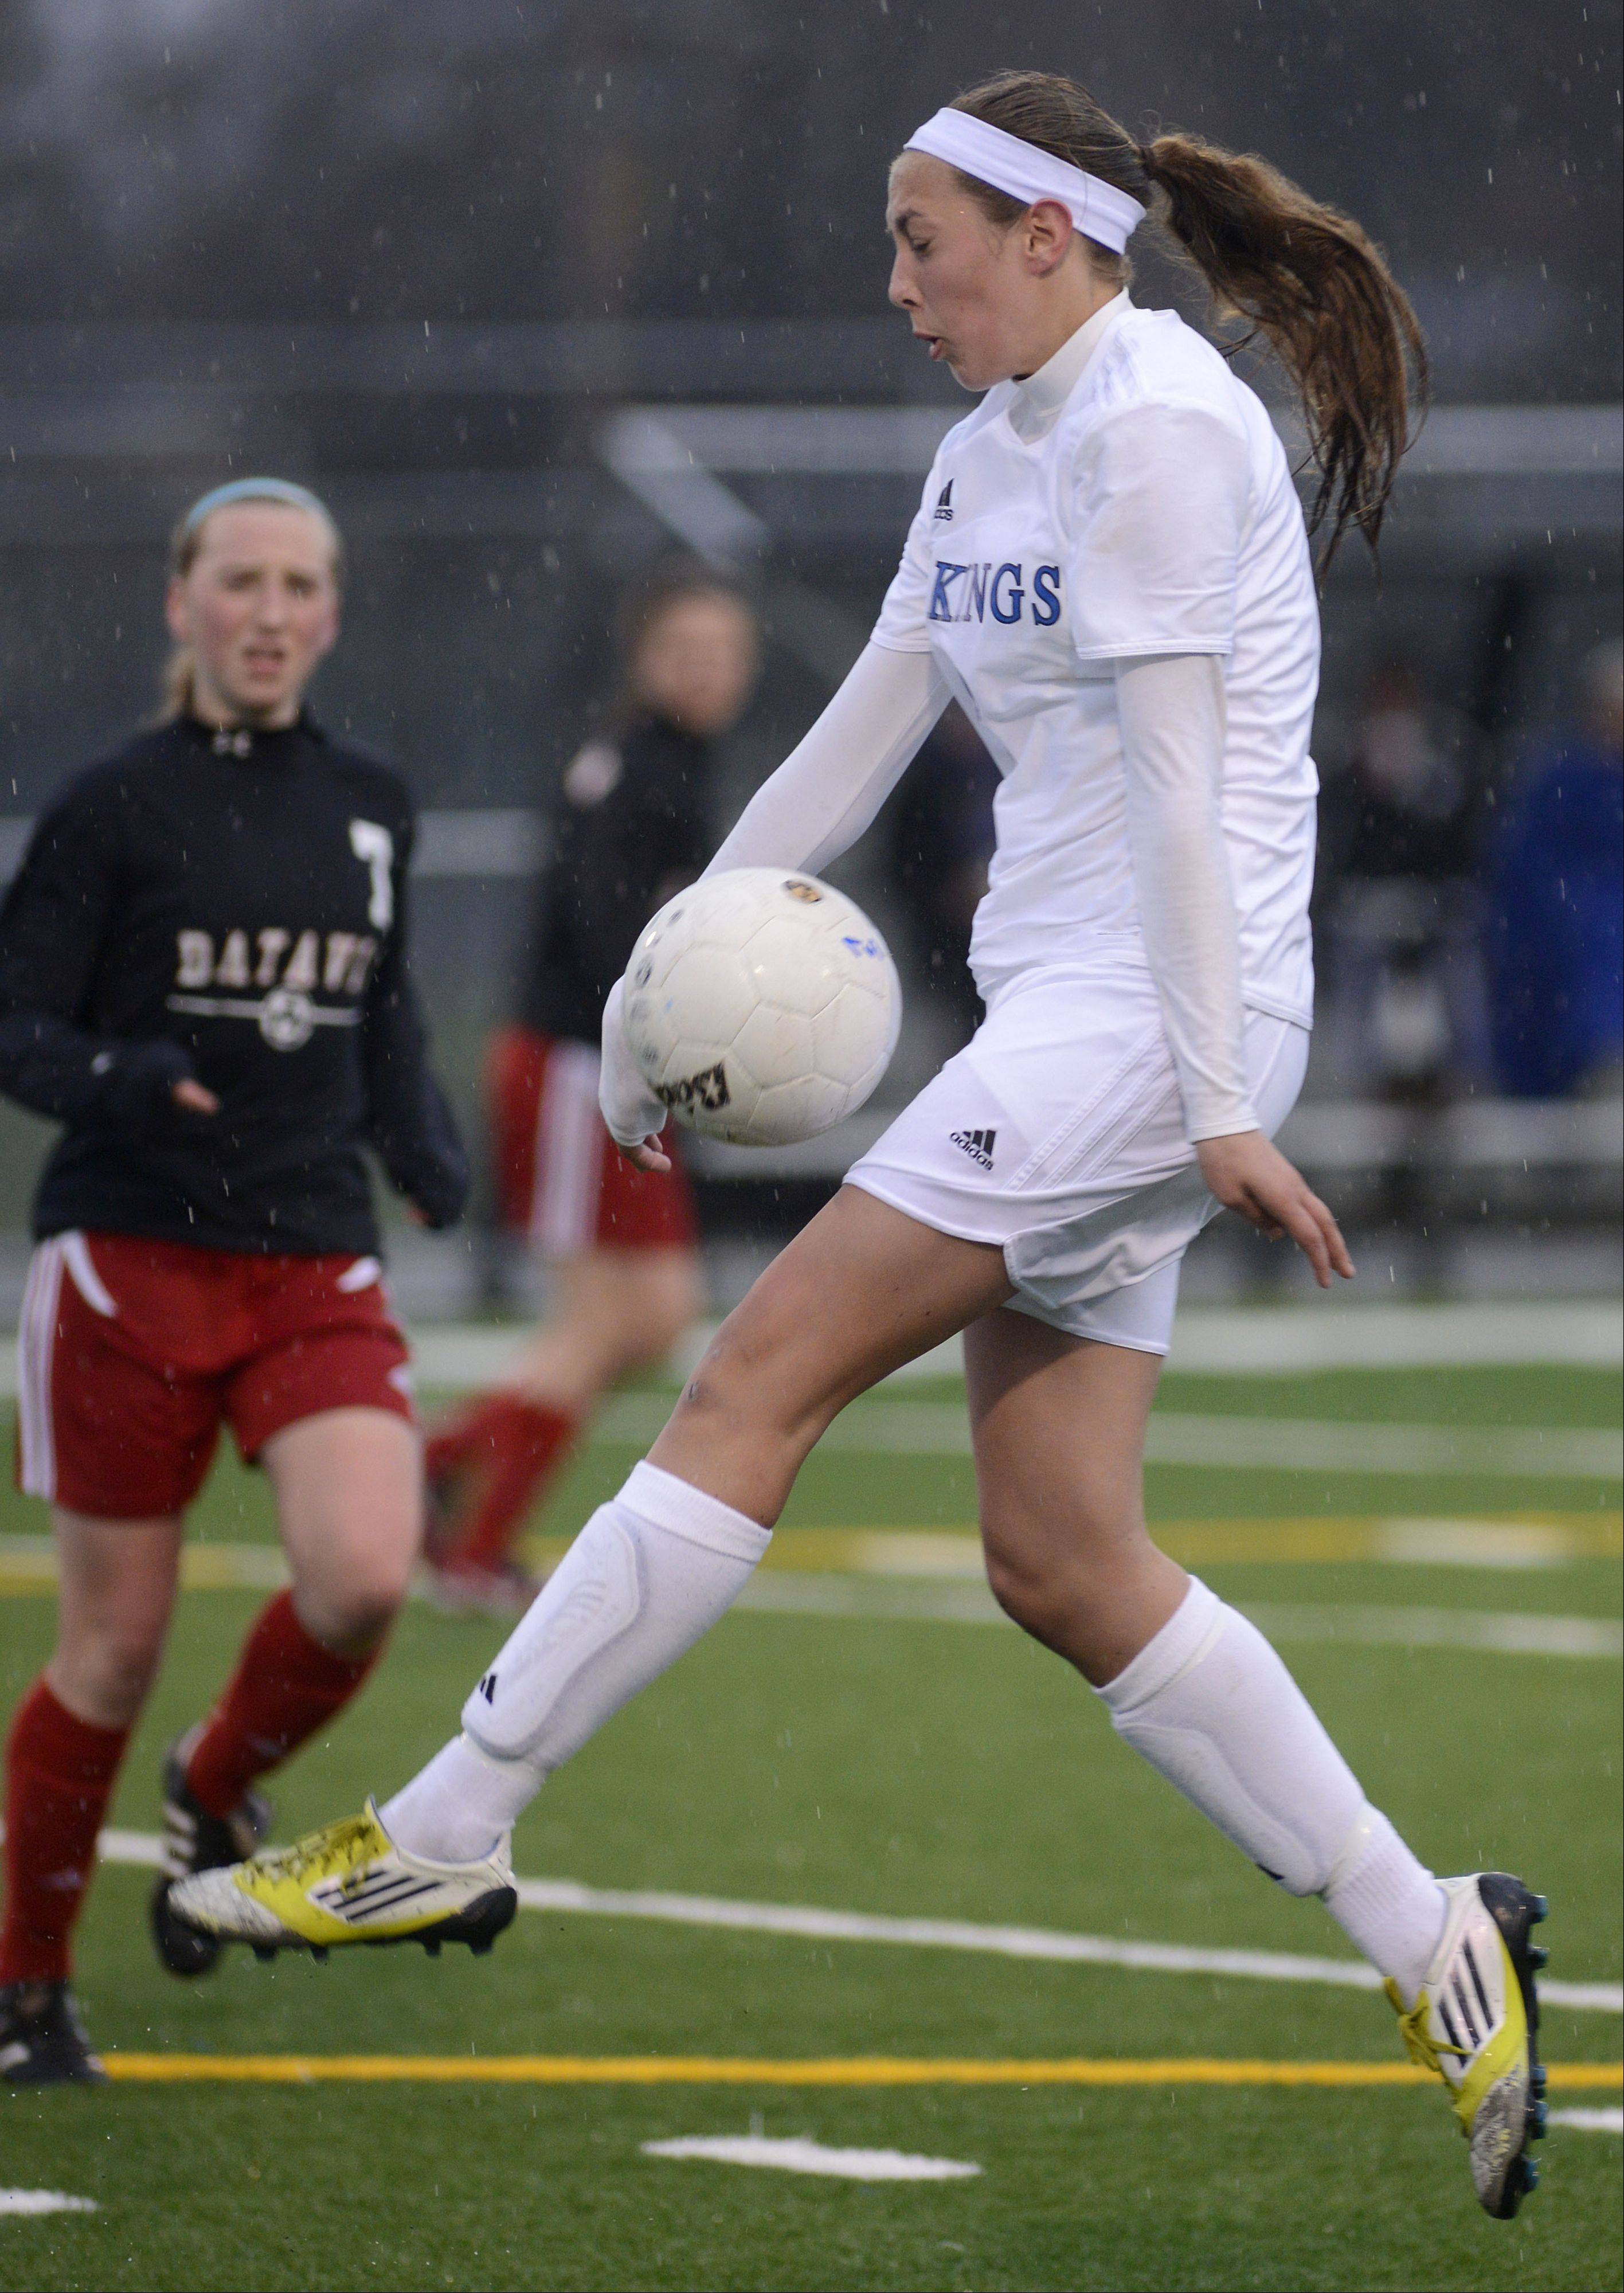 Geneva's Megan Fitz receives the ball and directs it downward during the first half on Tuesday, April 23.